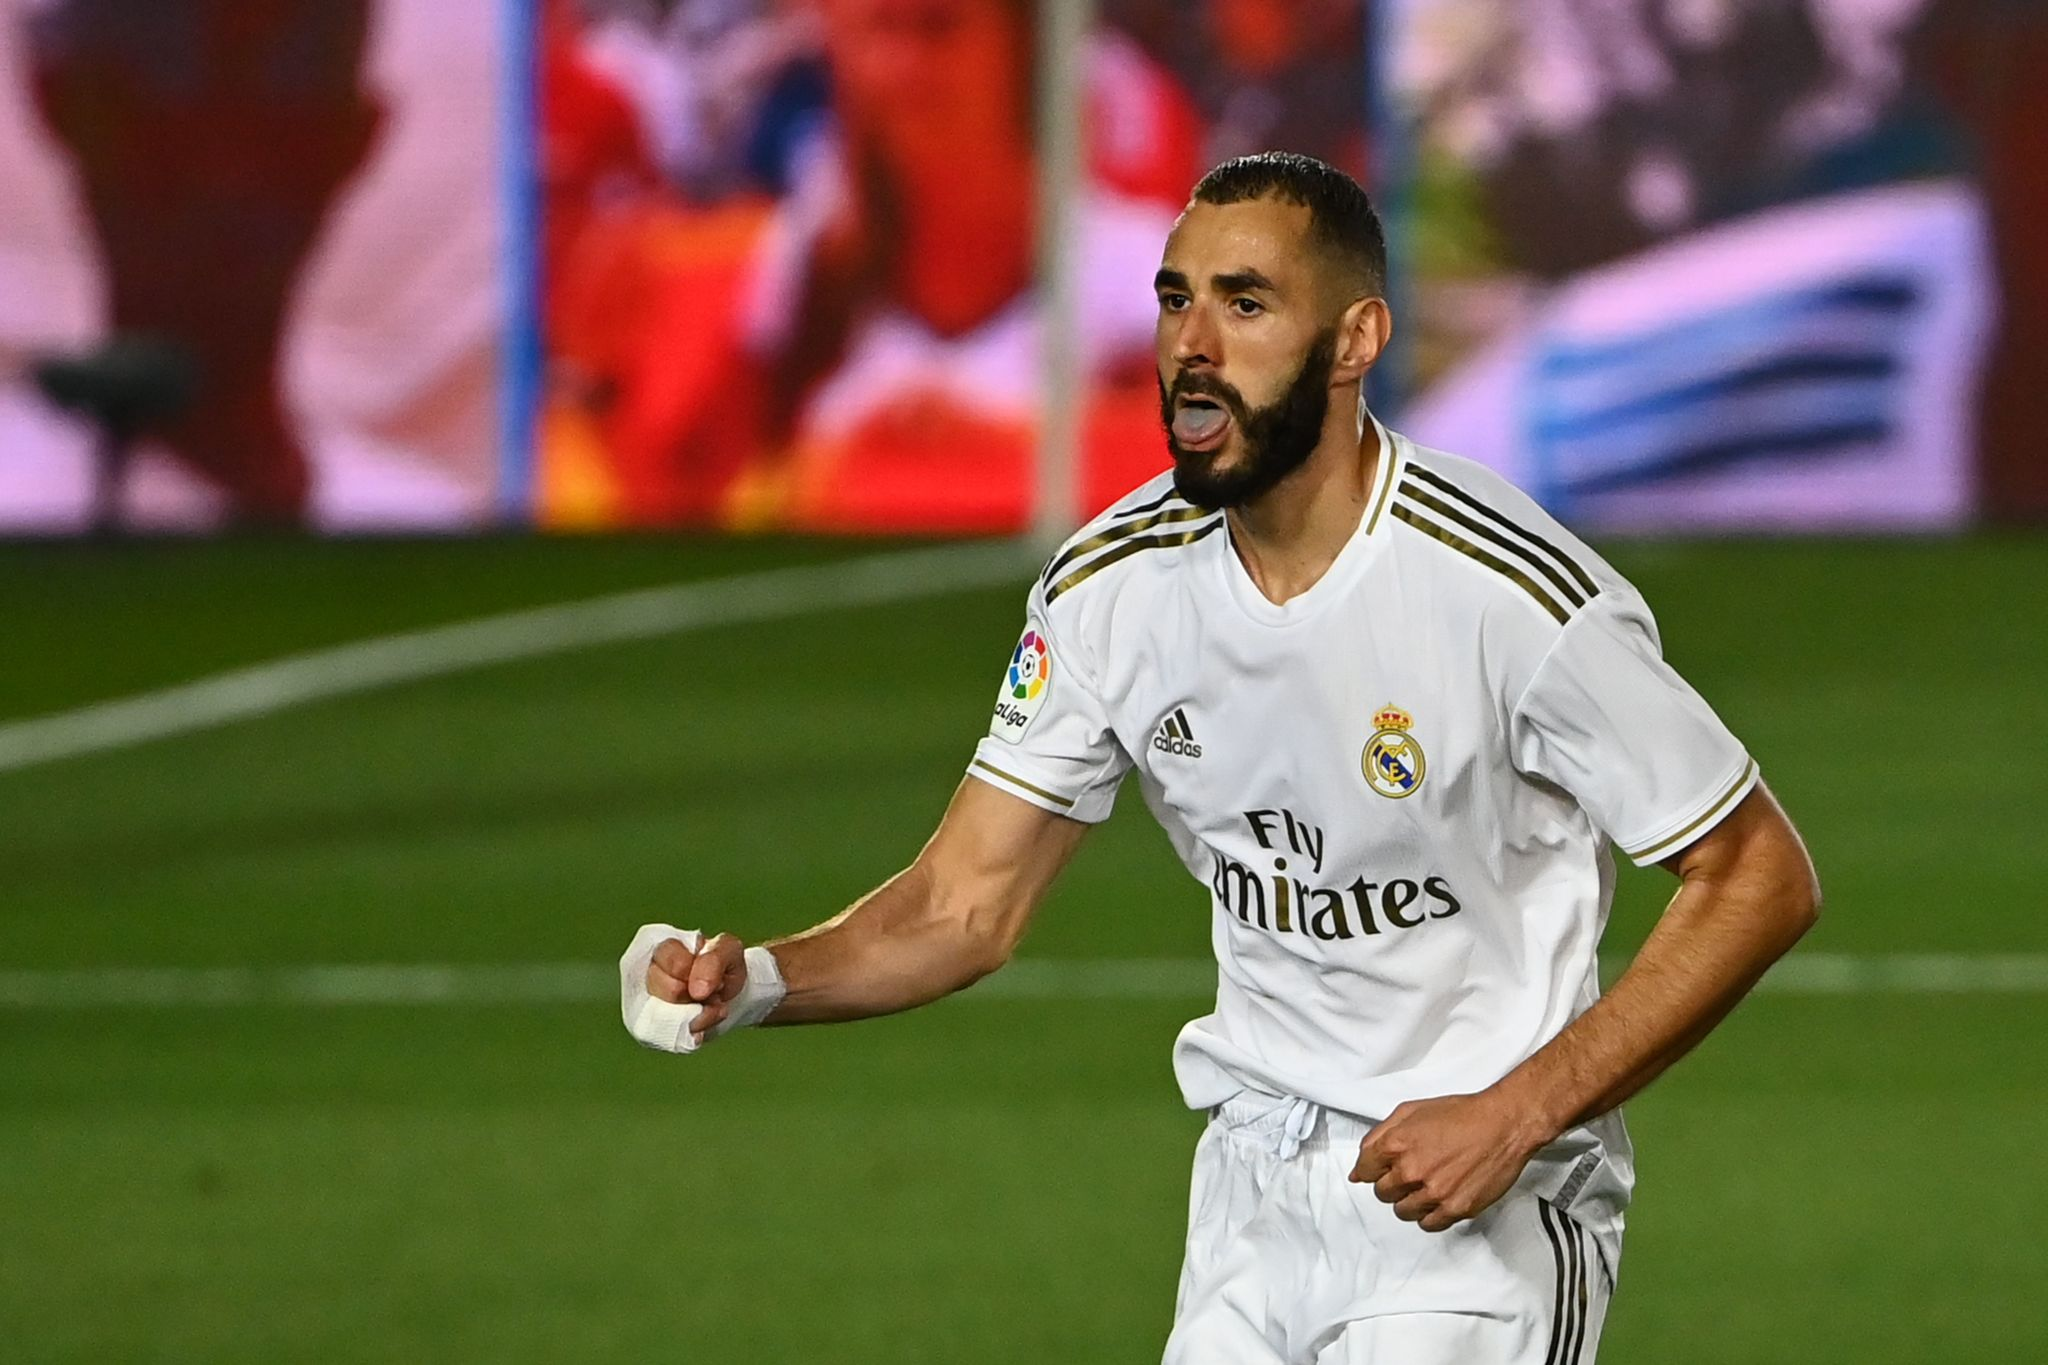 Leganes vs Real Madrid line-ups: Areola in goal while Benzema goes after the Pichichi